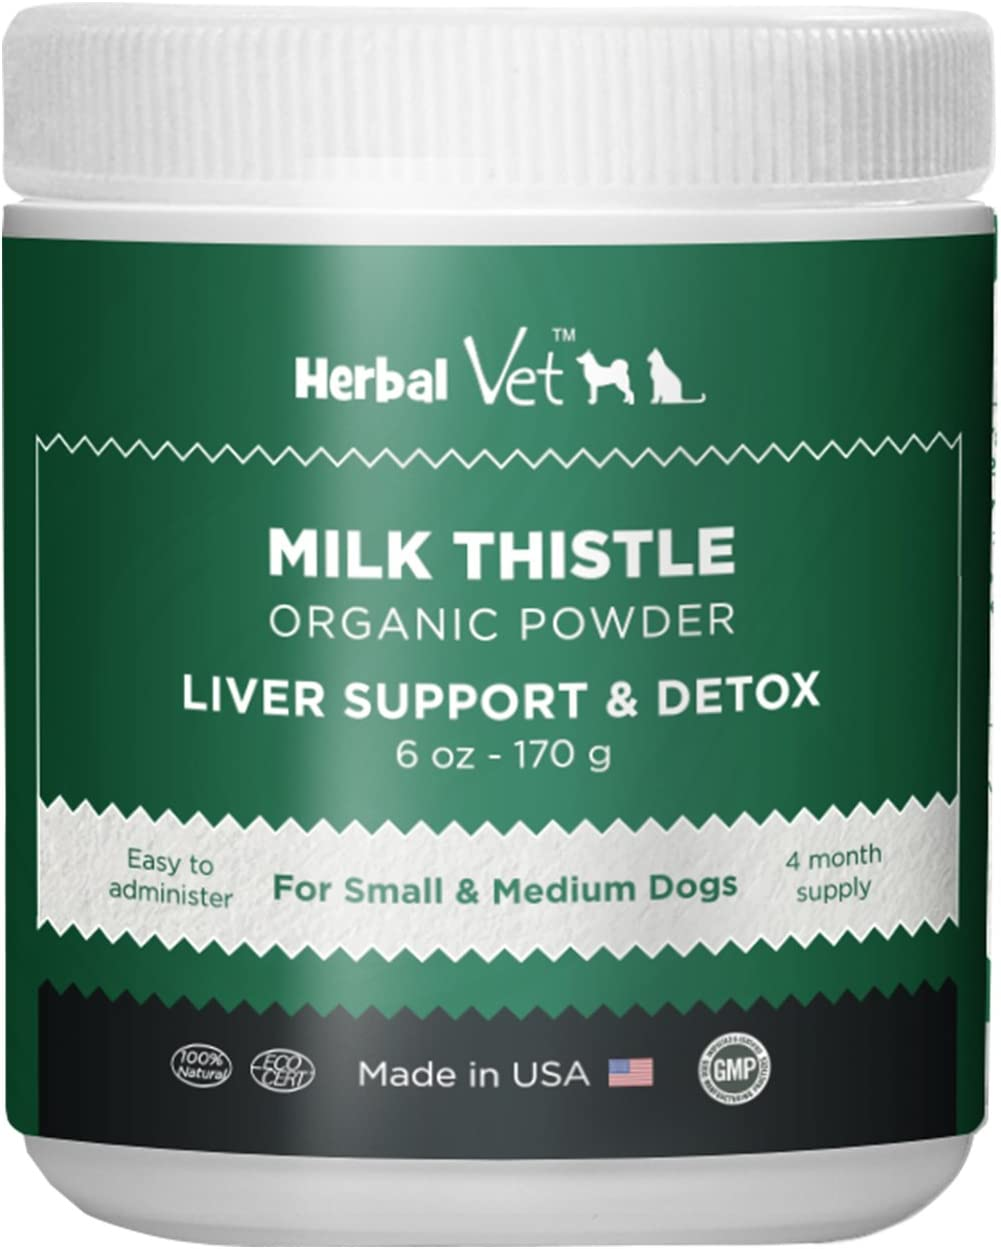 Certified Organic Milk Thistle Powder for Cats and Dogs – Easy to Mix with Wet or Dry Food- Promotes Healthy Liver Function and Detox for Pets